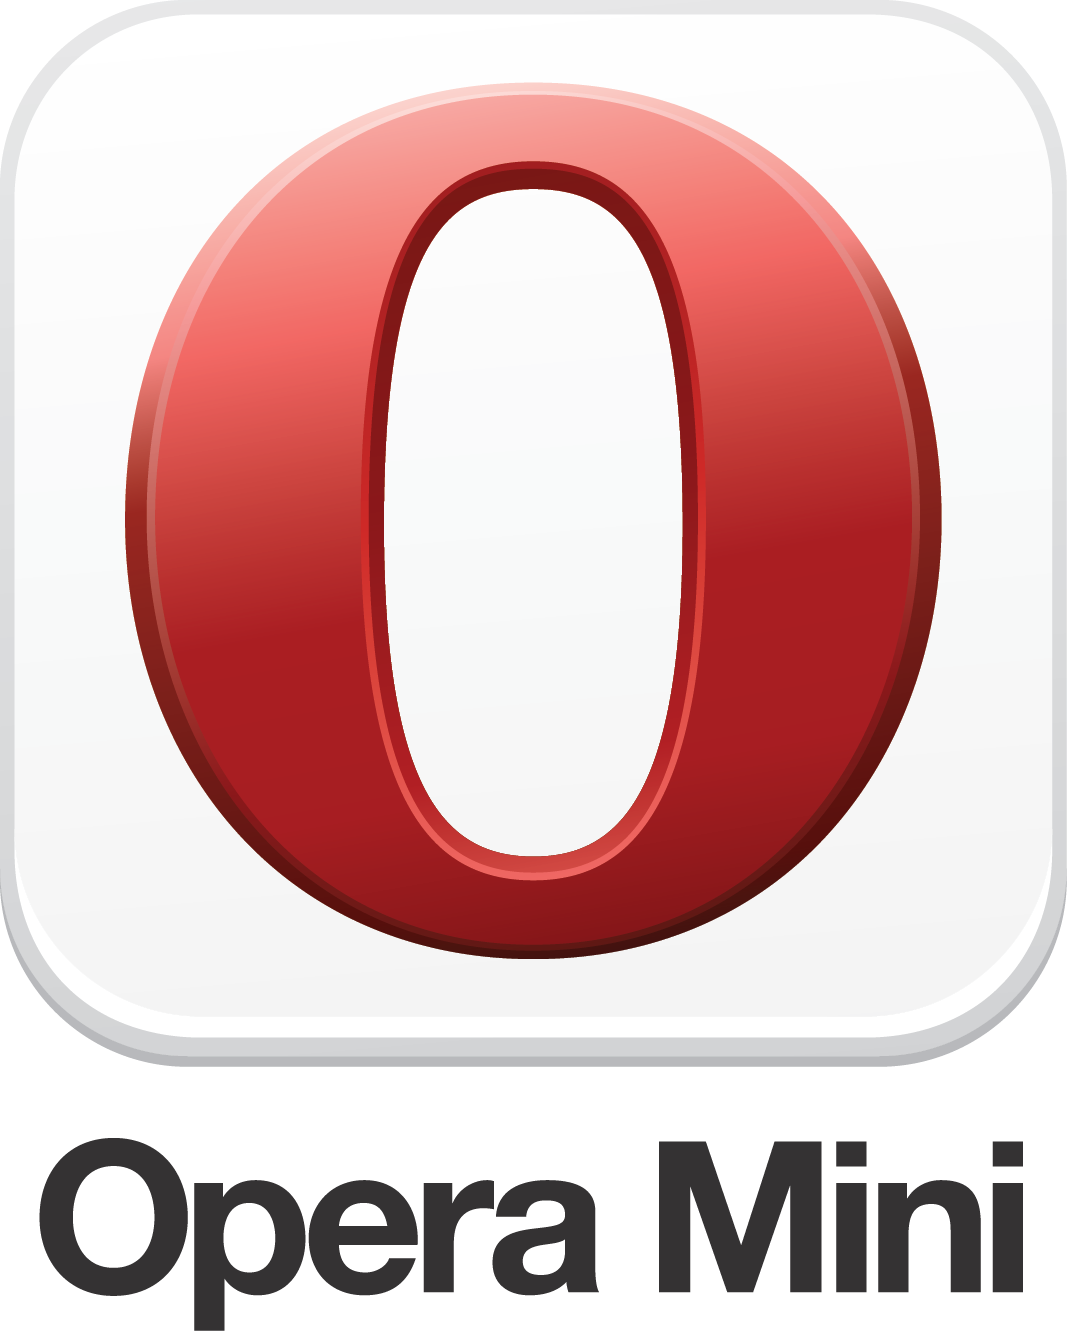 Download Big Files with Opera Mini Browser - TechTipTrack